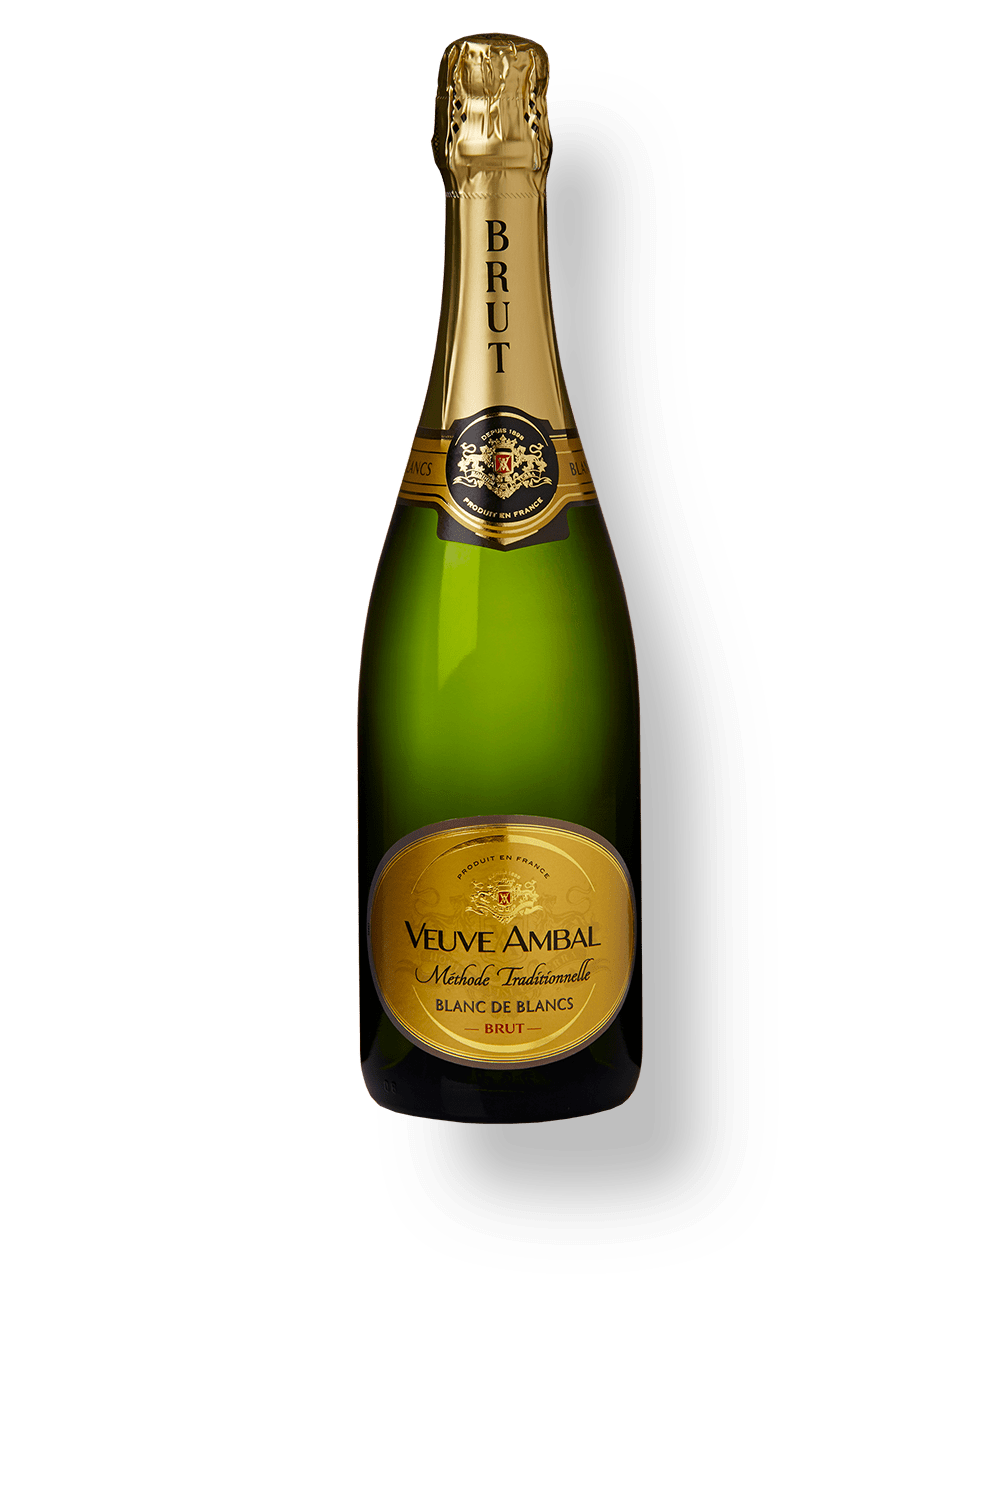 Espumante_Veuve_Ambal_Methode_Traditionnelle_Brut_Veuve_Ambal_Airen